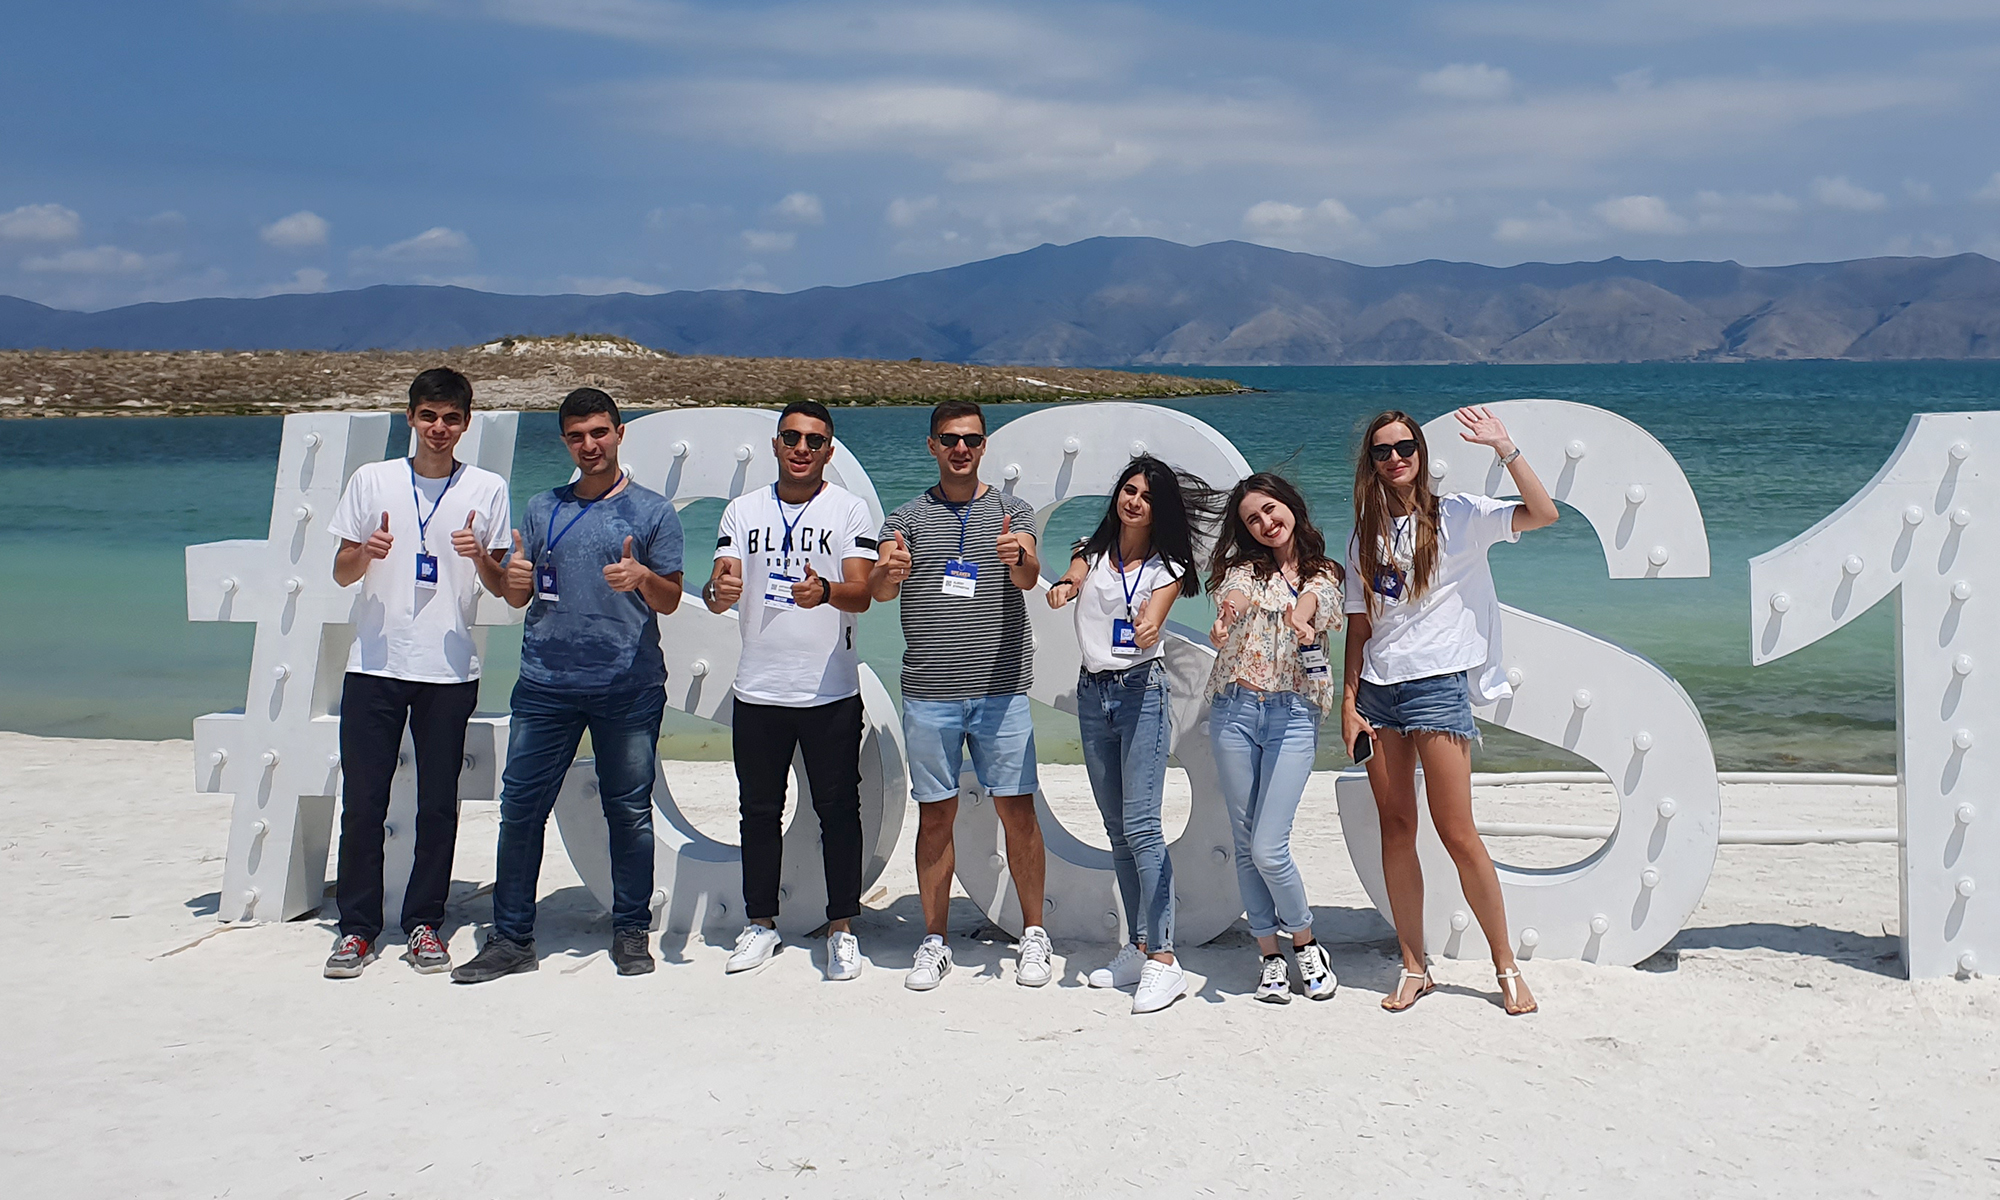 New Partnership, Connections, Camp Mood and More. A Throwback to Sevan Startup Summit 2019